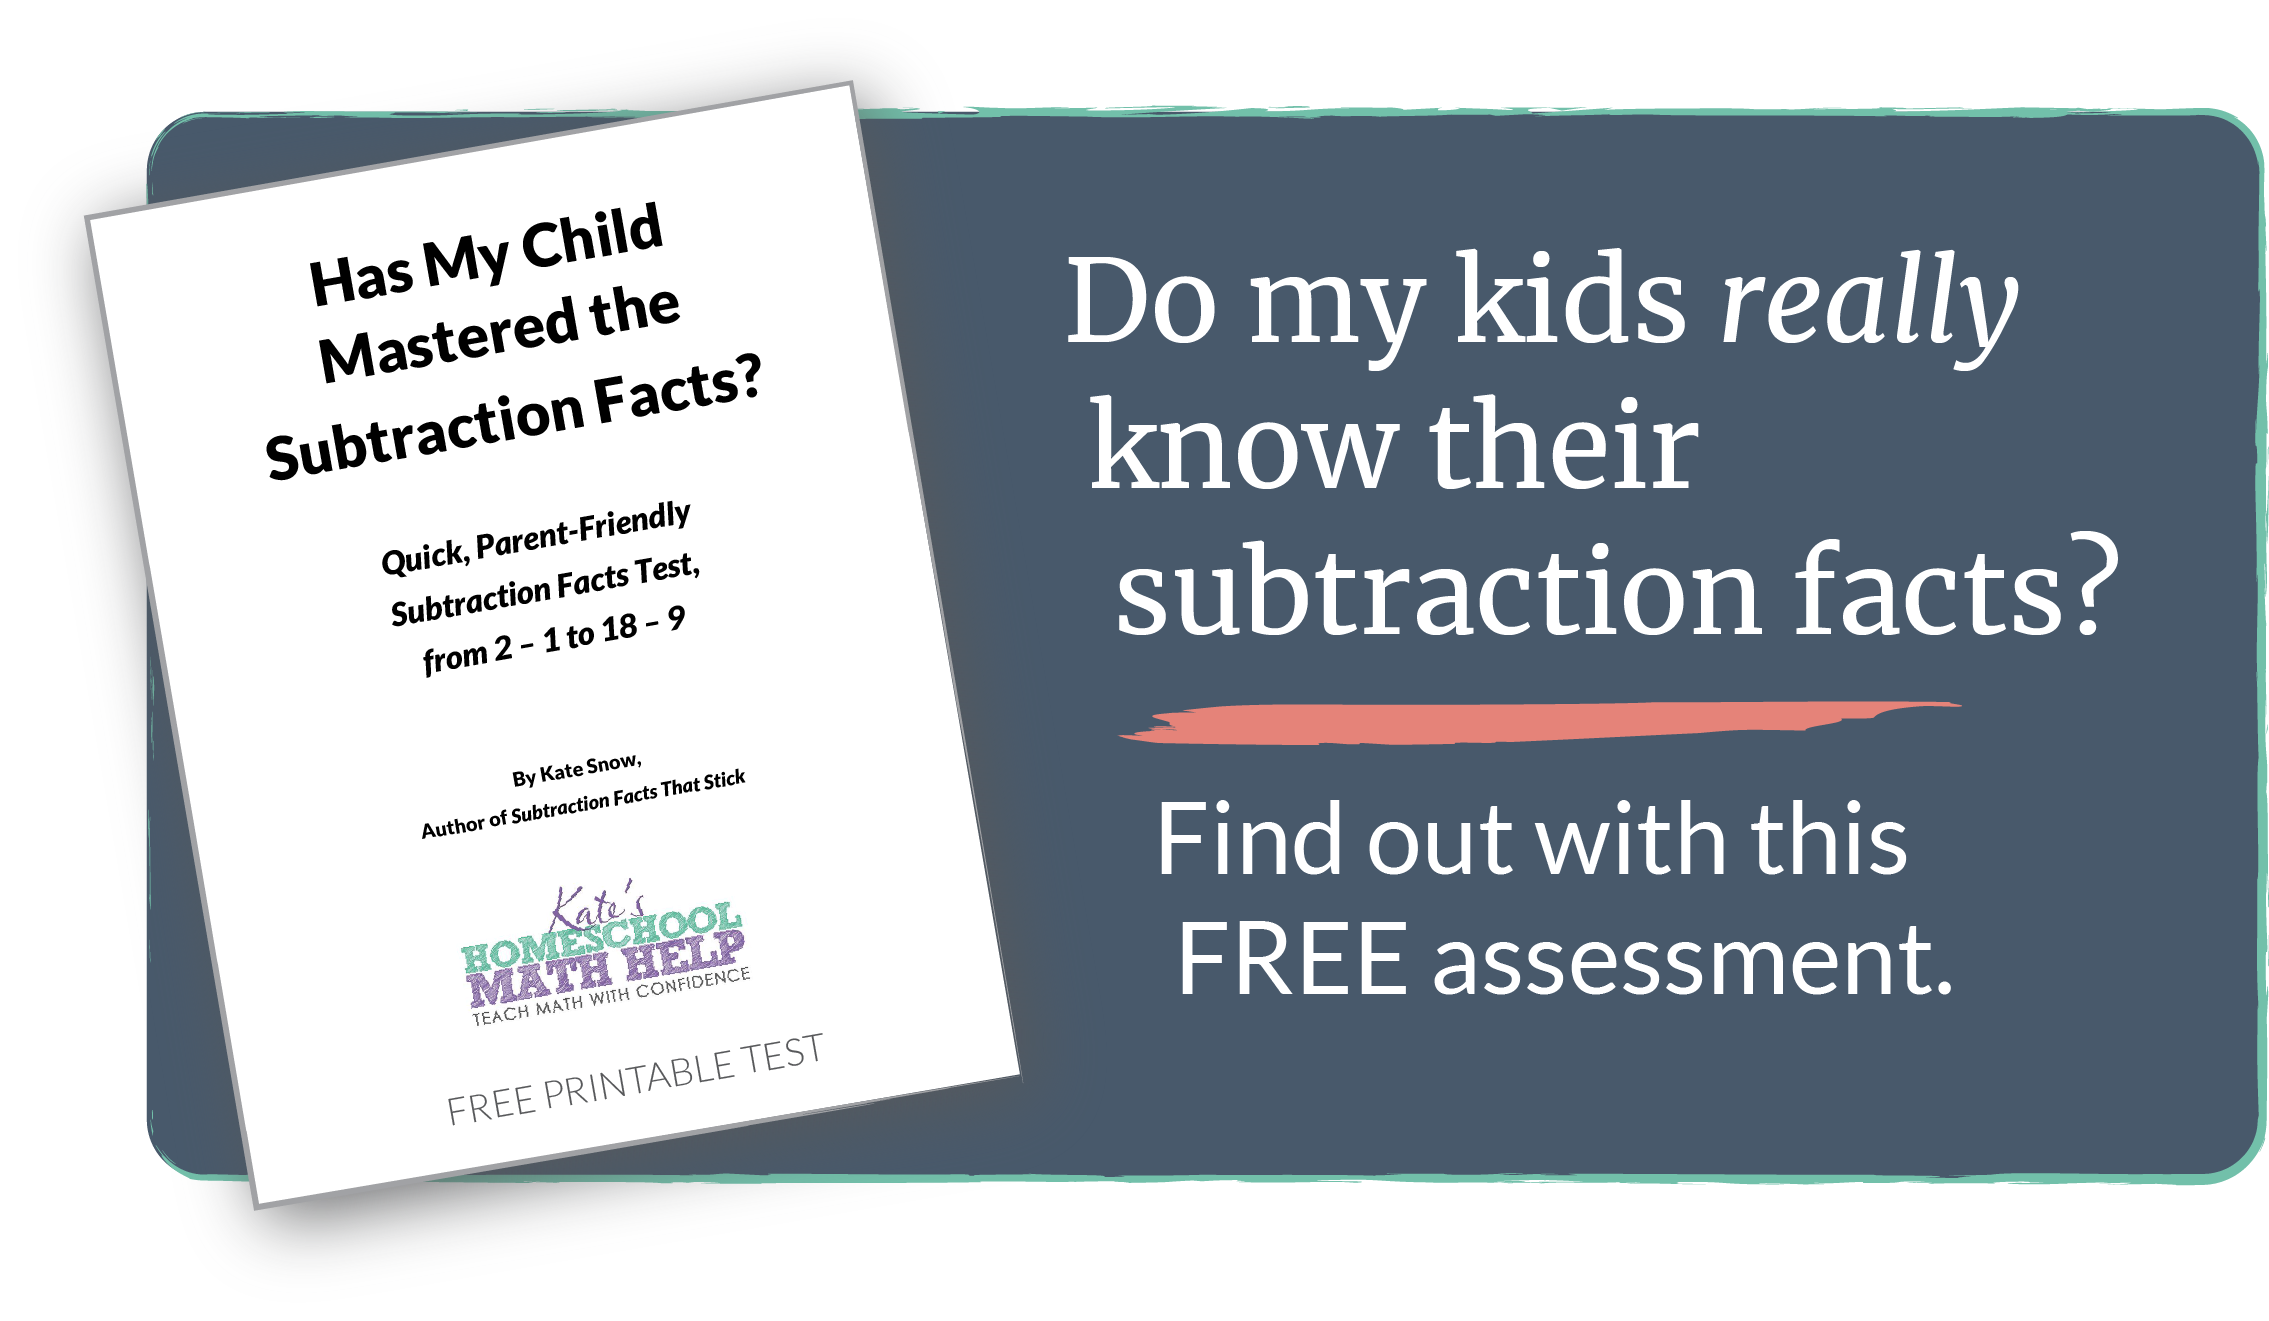 Your Complete Guide To Teaching Your Child The Subtraction Facts